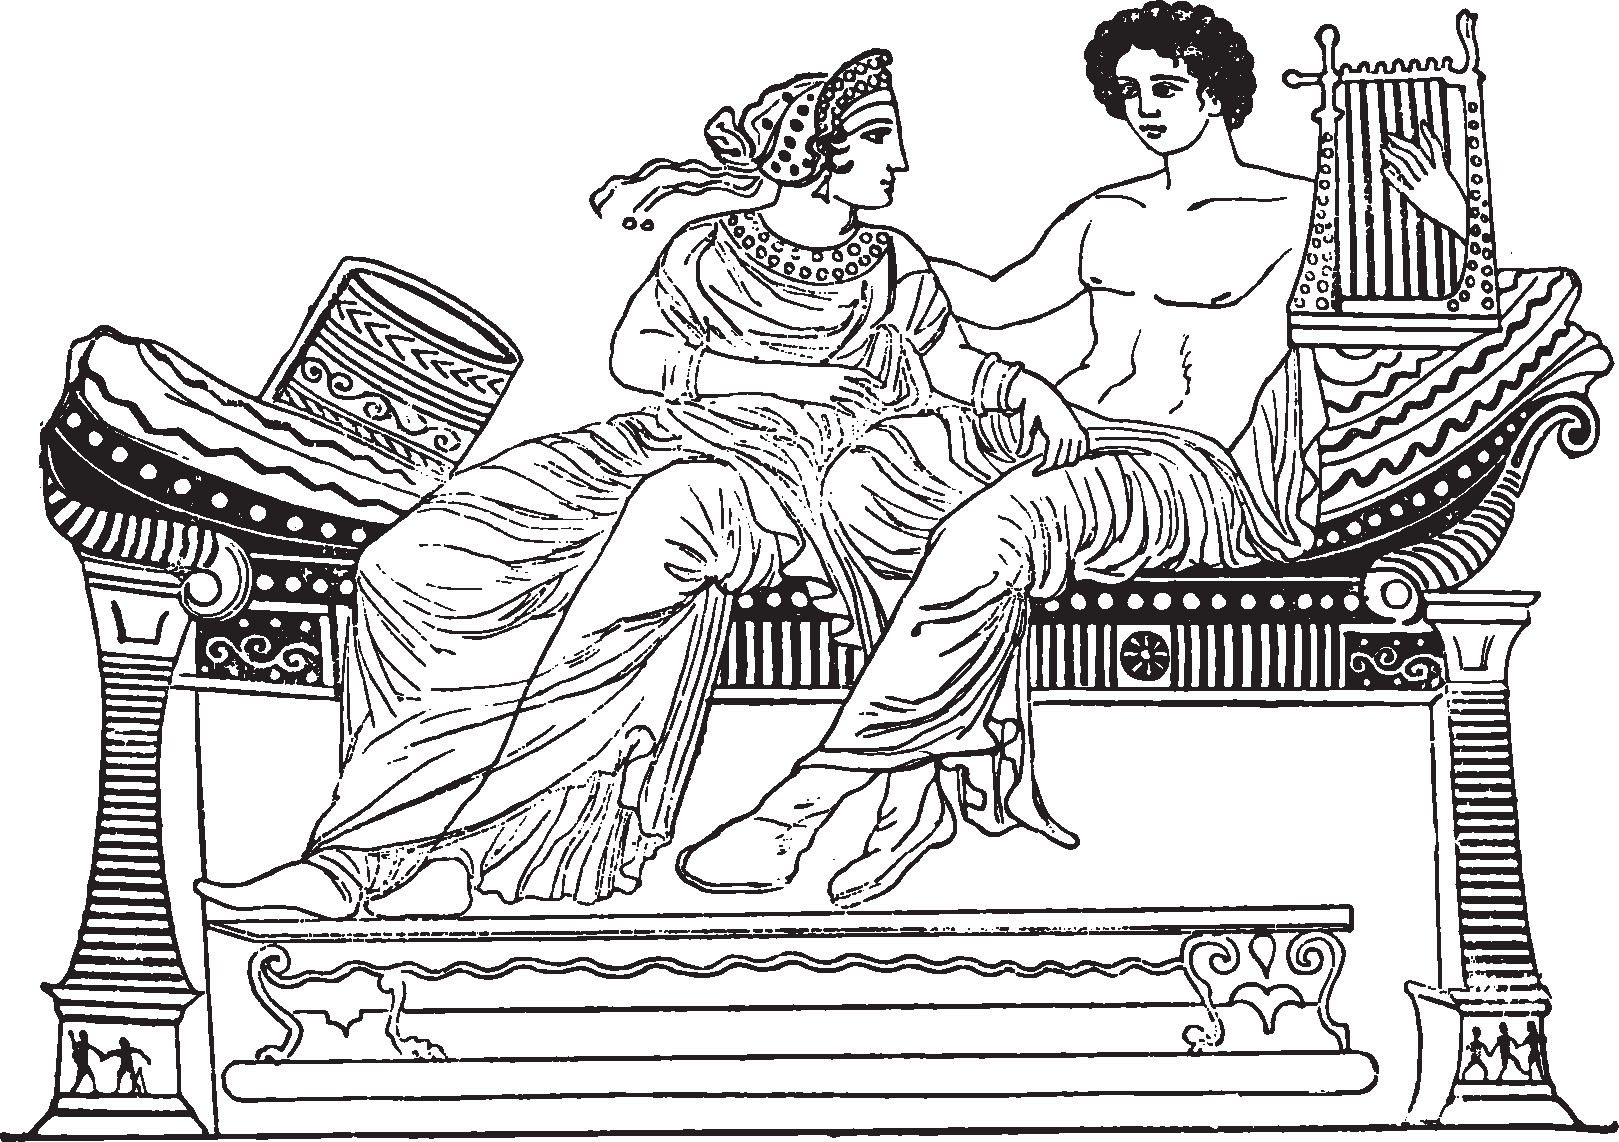 How Much Do You Know About the History of the Mattress?